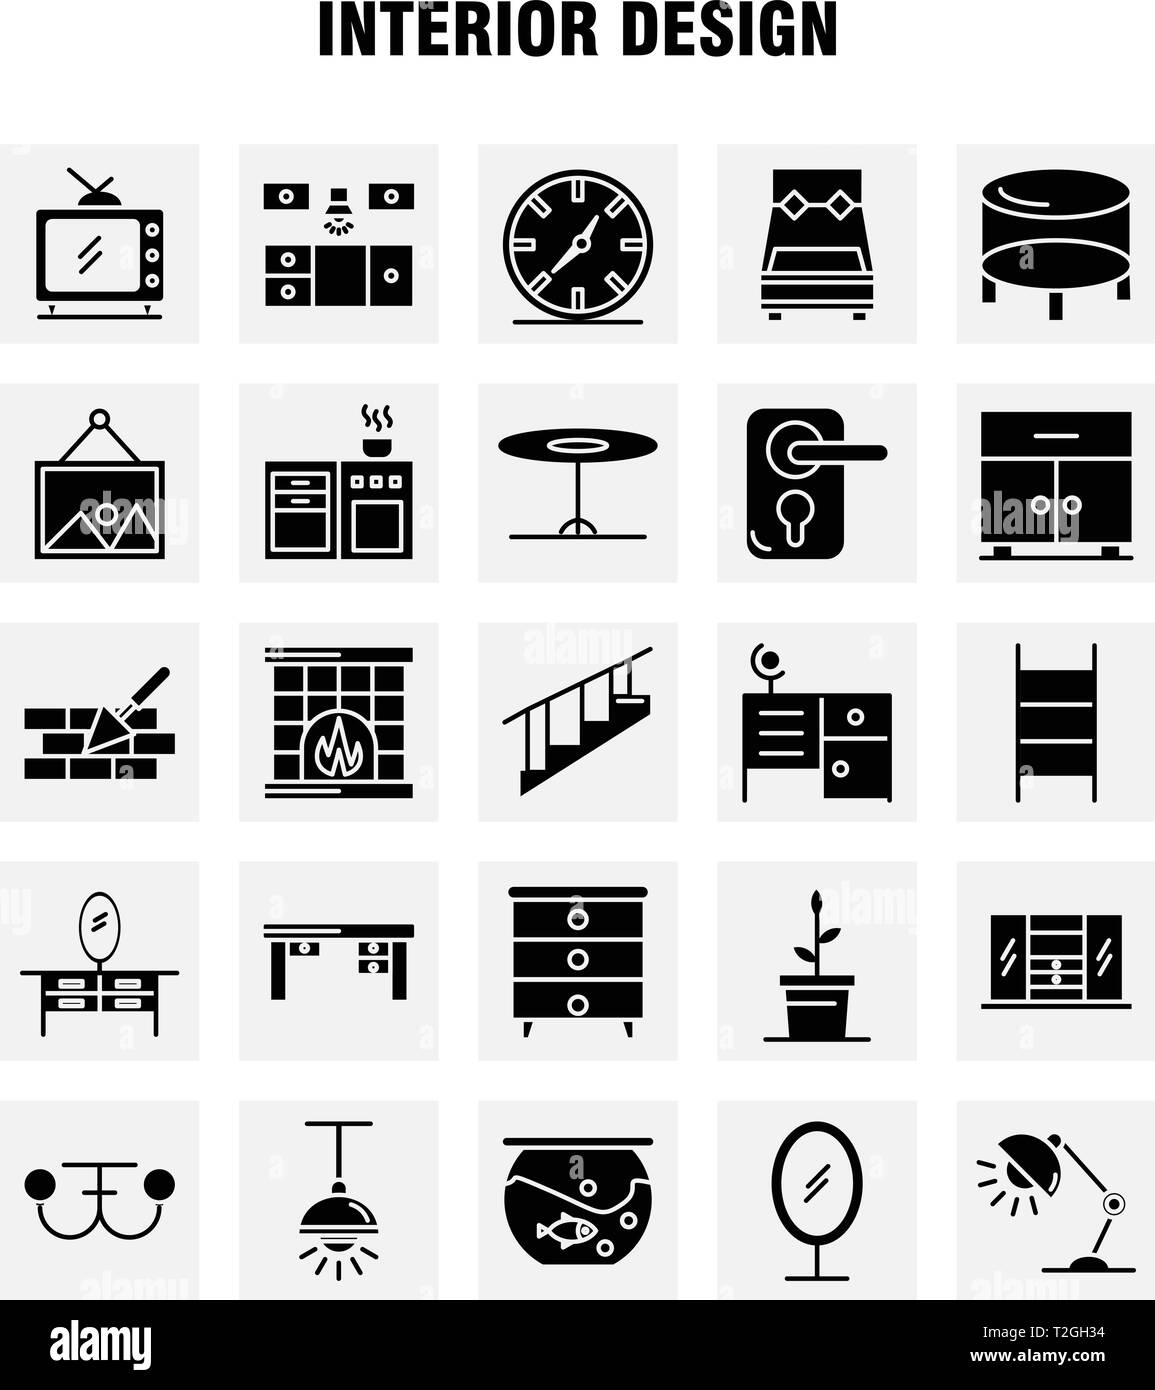 Interior Design Solid Glyph Icons Set For Infographics Mobile Ux Ui Kit And Print Design Include Bedroom Cupboard Furniture House Wardrobe Tel Stock Vector Image Art Alamy,Best Decorated Homes For Christmas